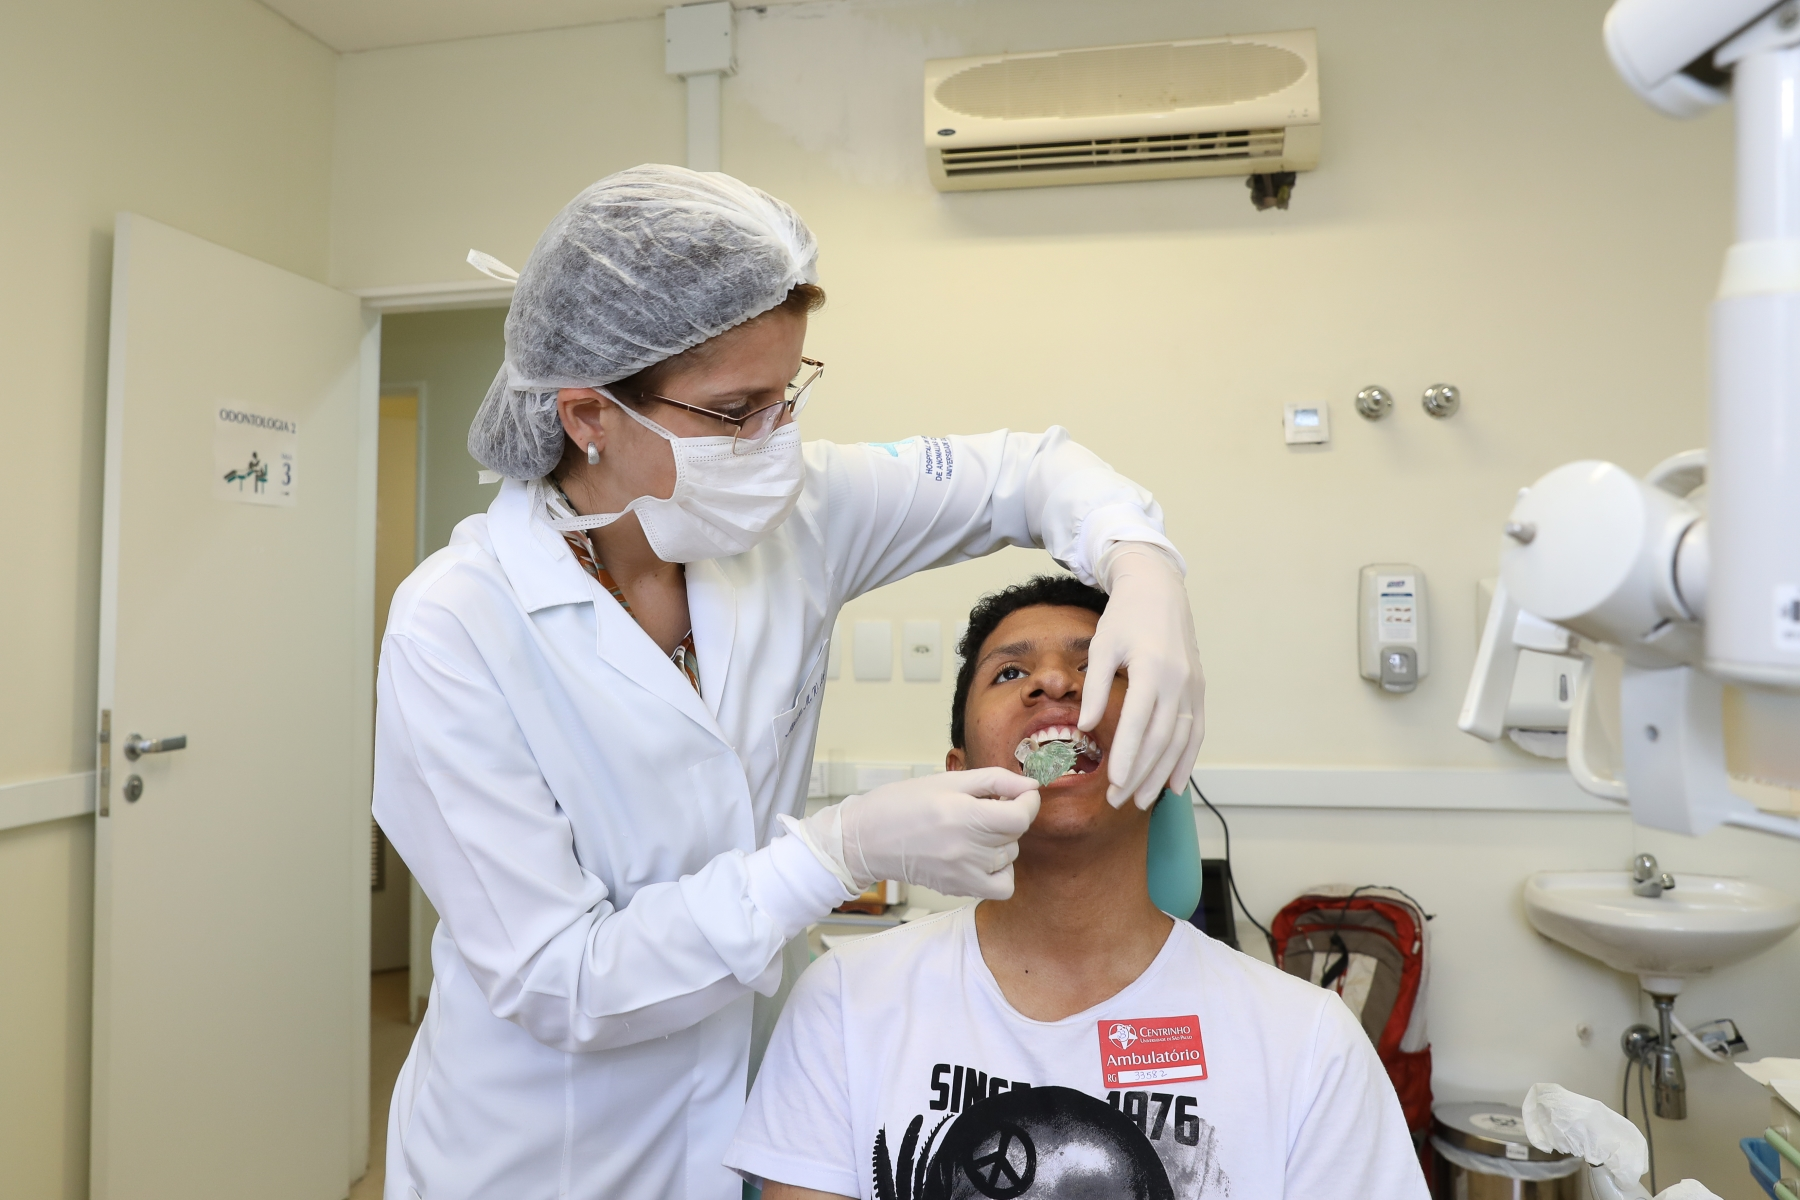 Patient gets prosthesis' adjustment by dentist in dental office